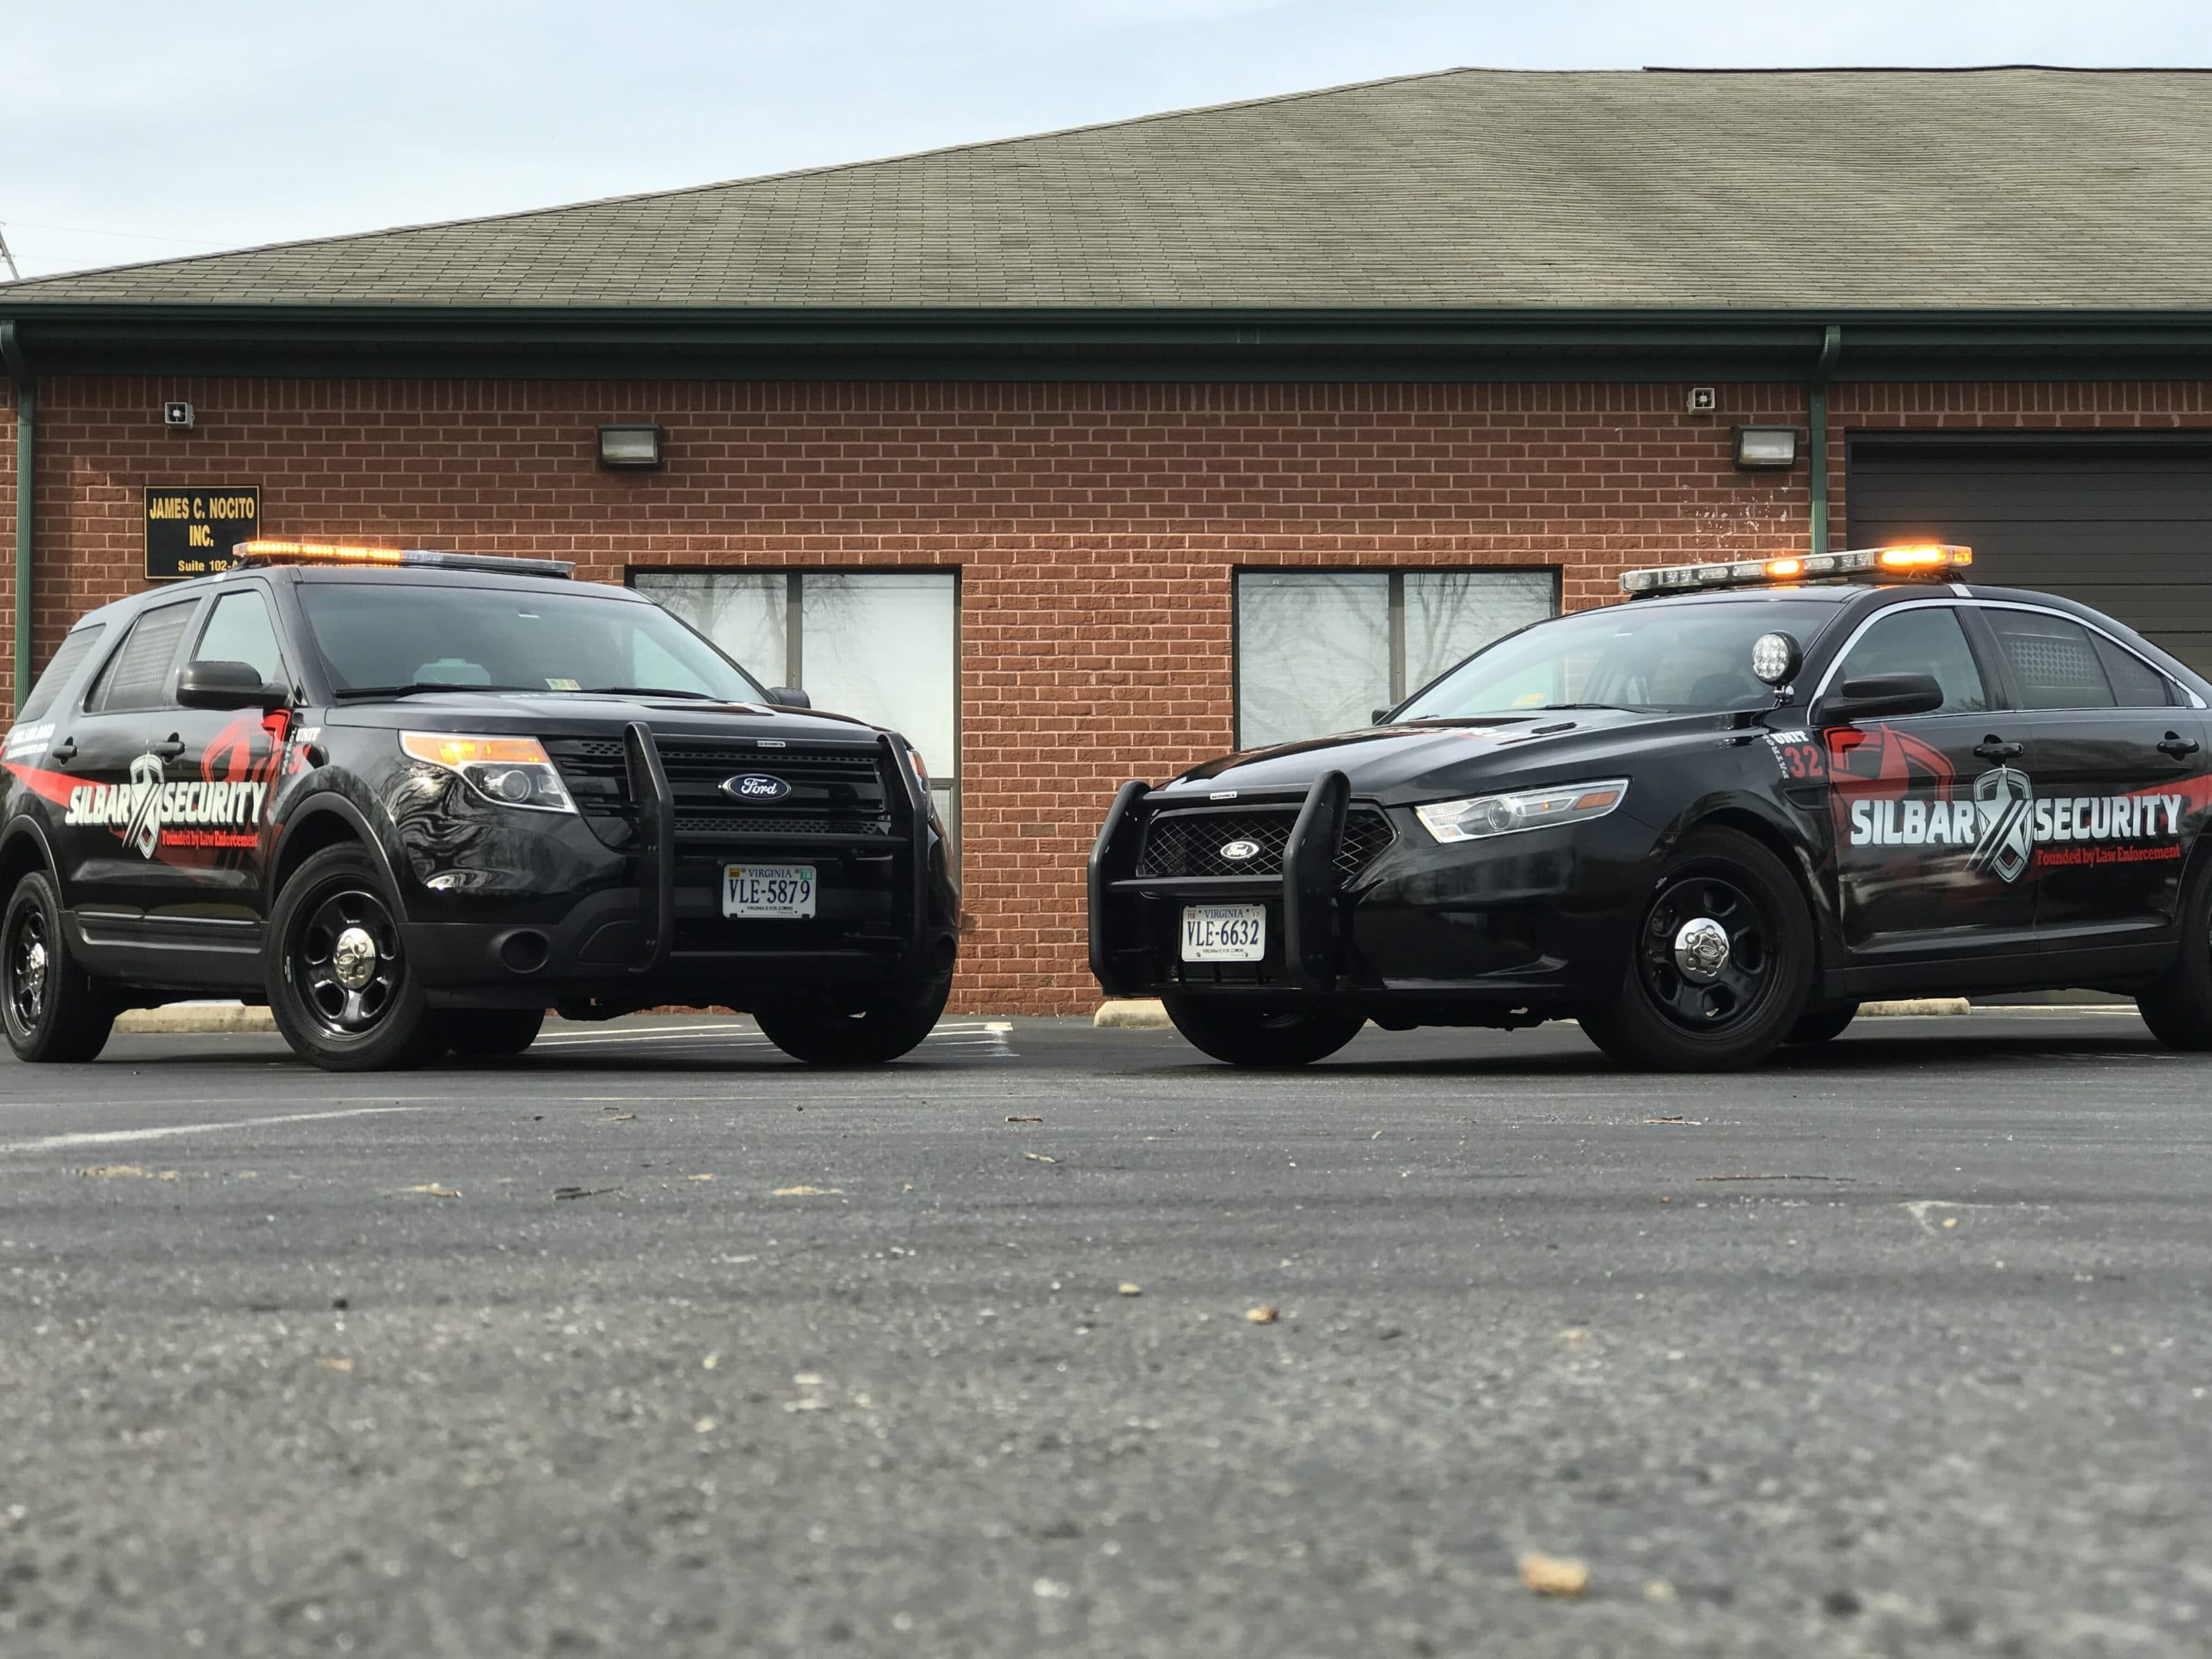 Silbar Security Marked Patrol Vehicles